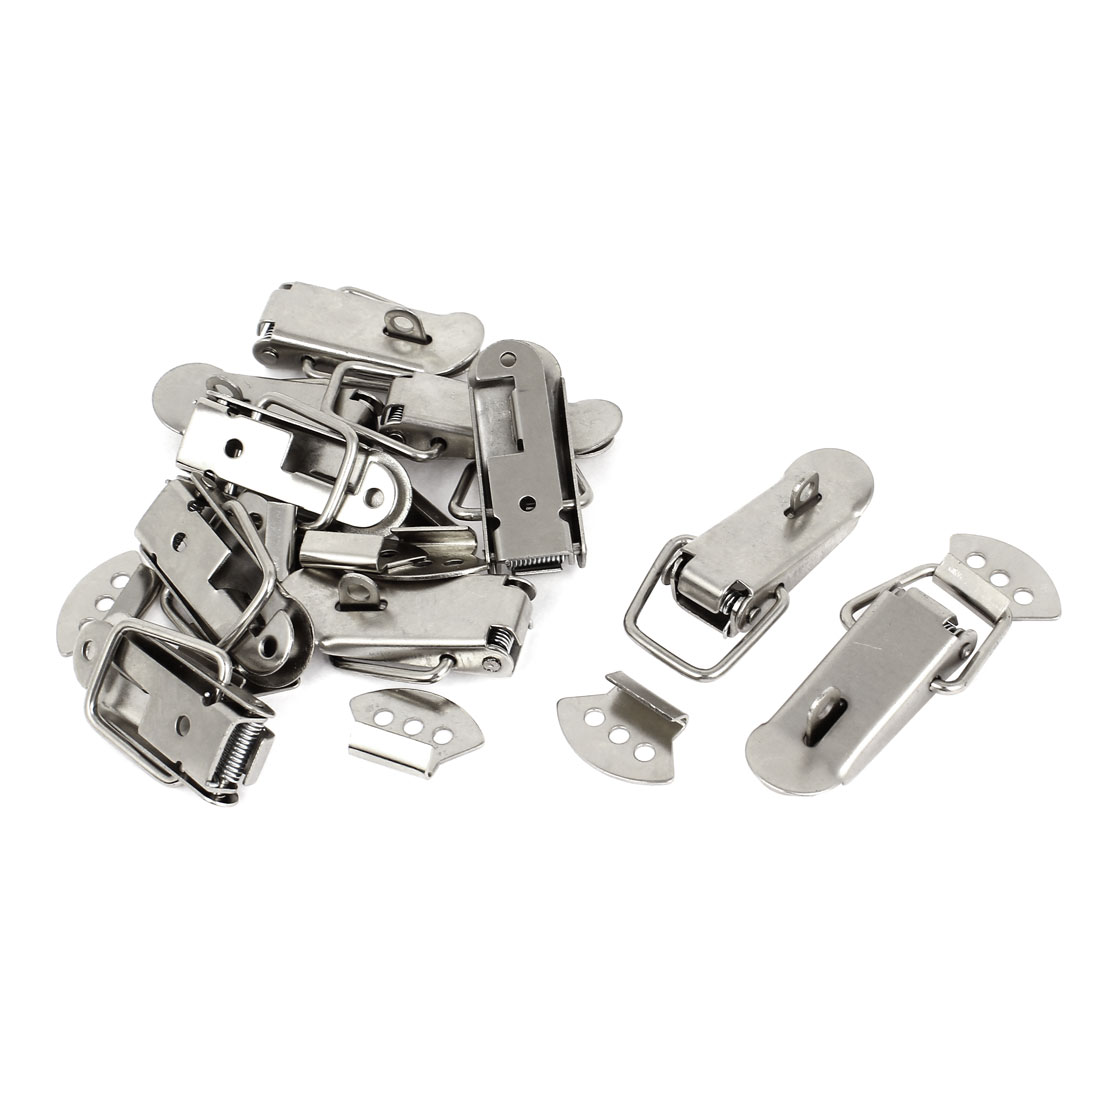 Chests Cases Stainless Steel Spring Loaded Lock Clasp Toggle Latch Hasp 10 Set